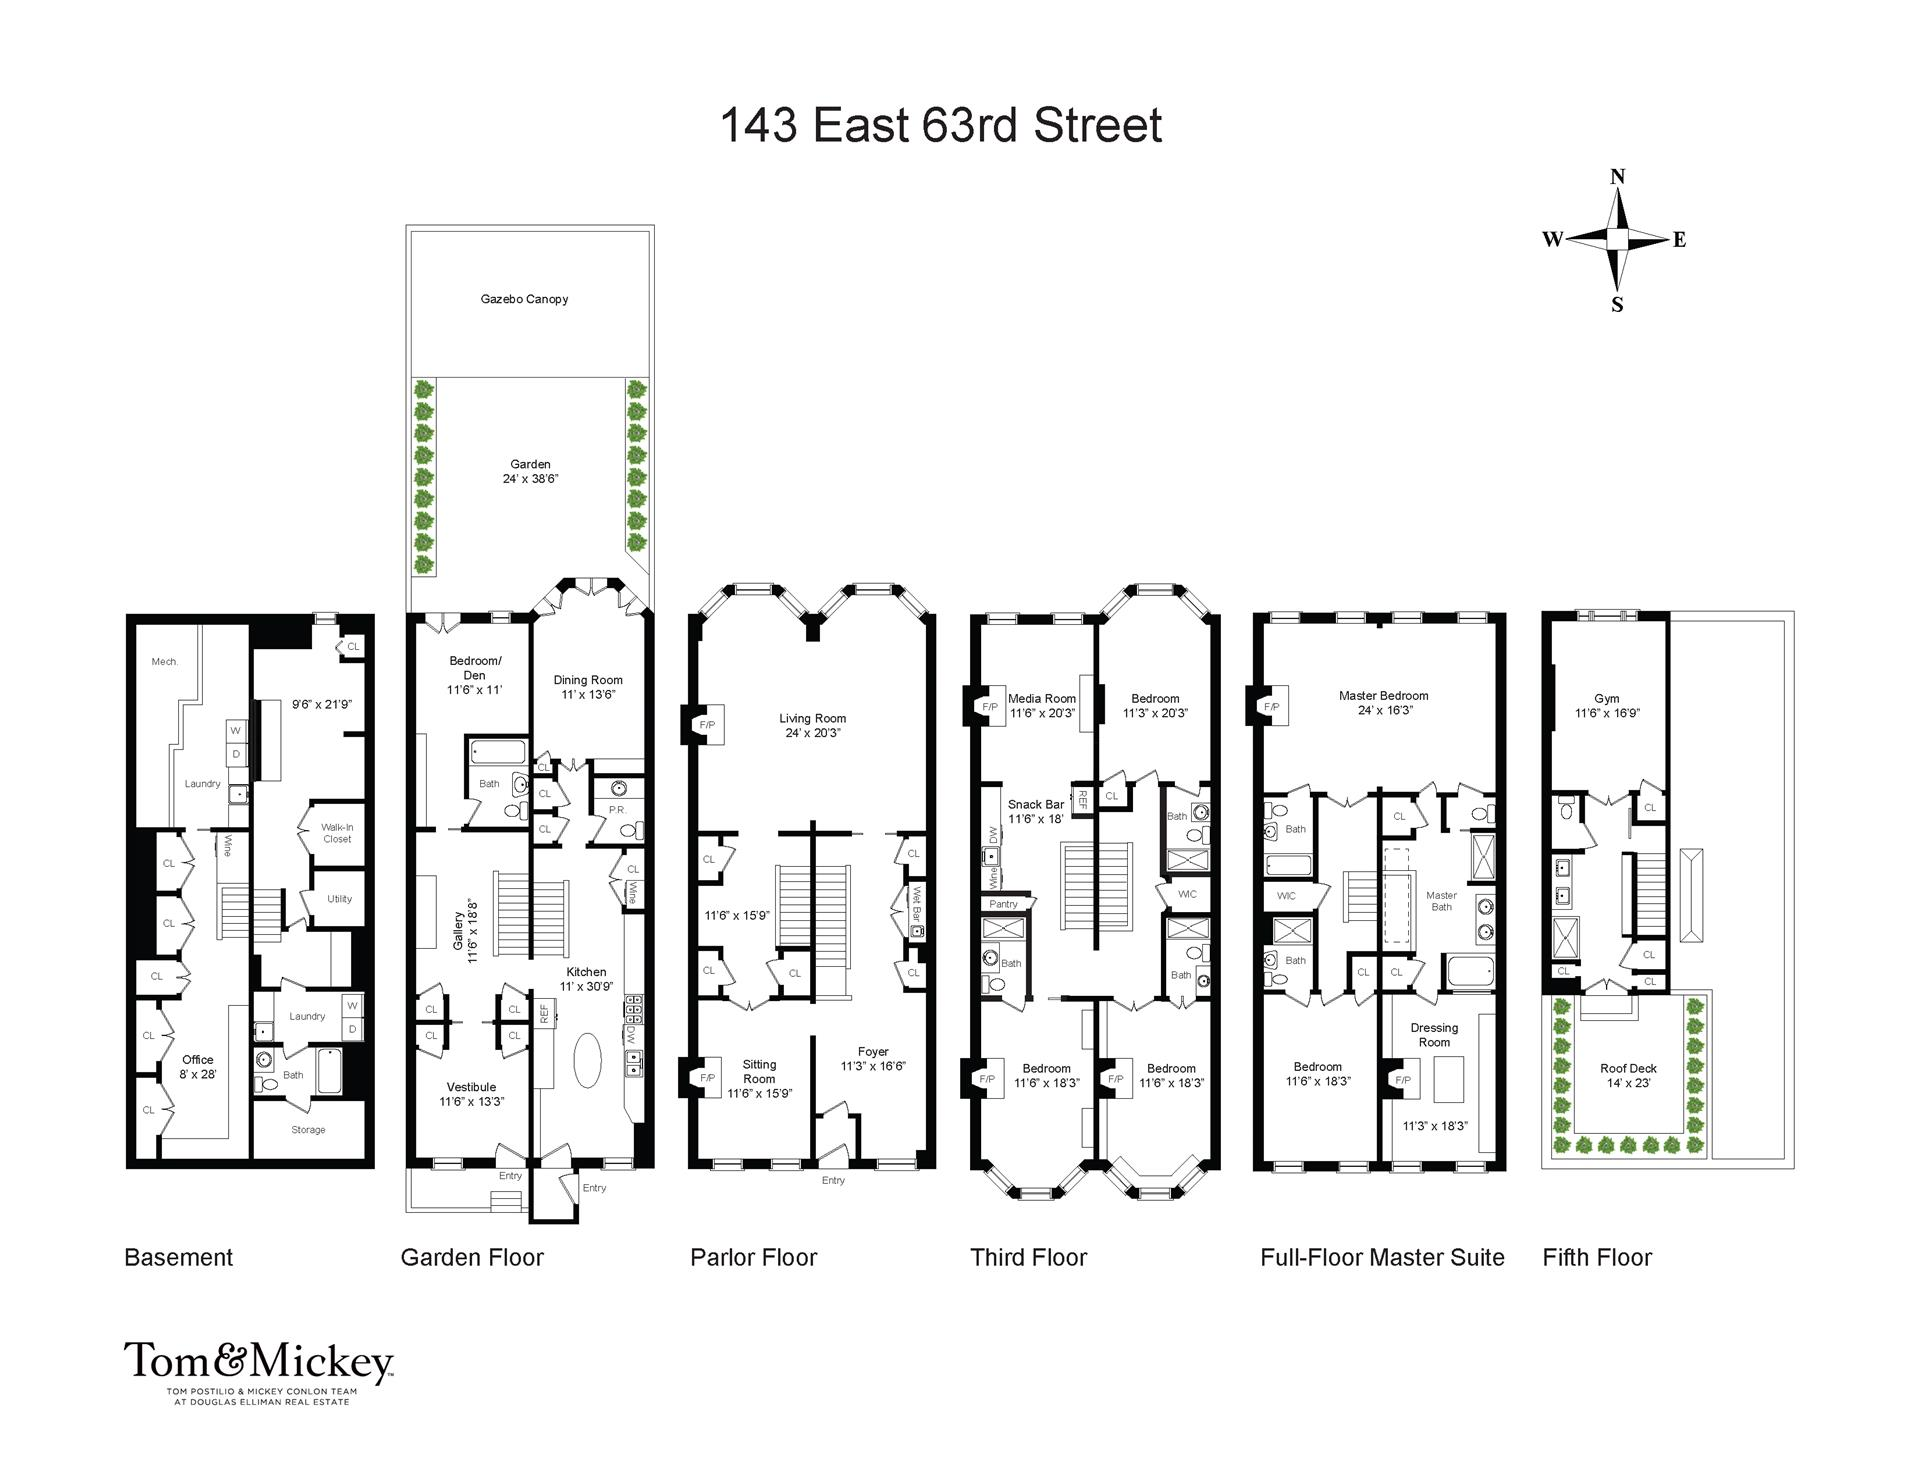 Floor plan of 143 East 63rd St - Upper East Side, New York